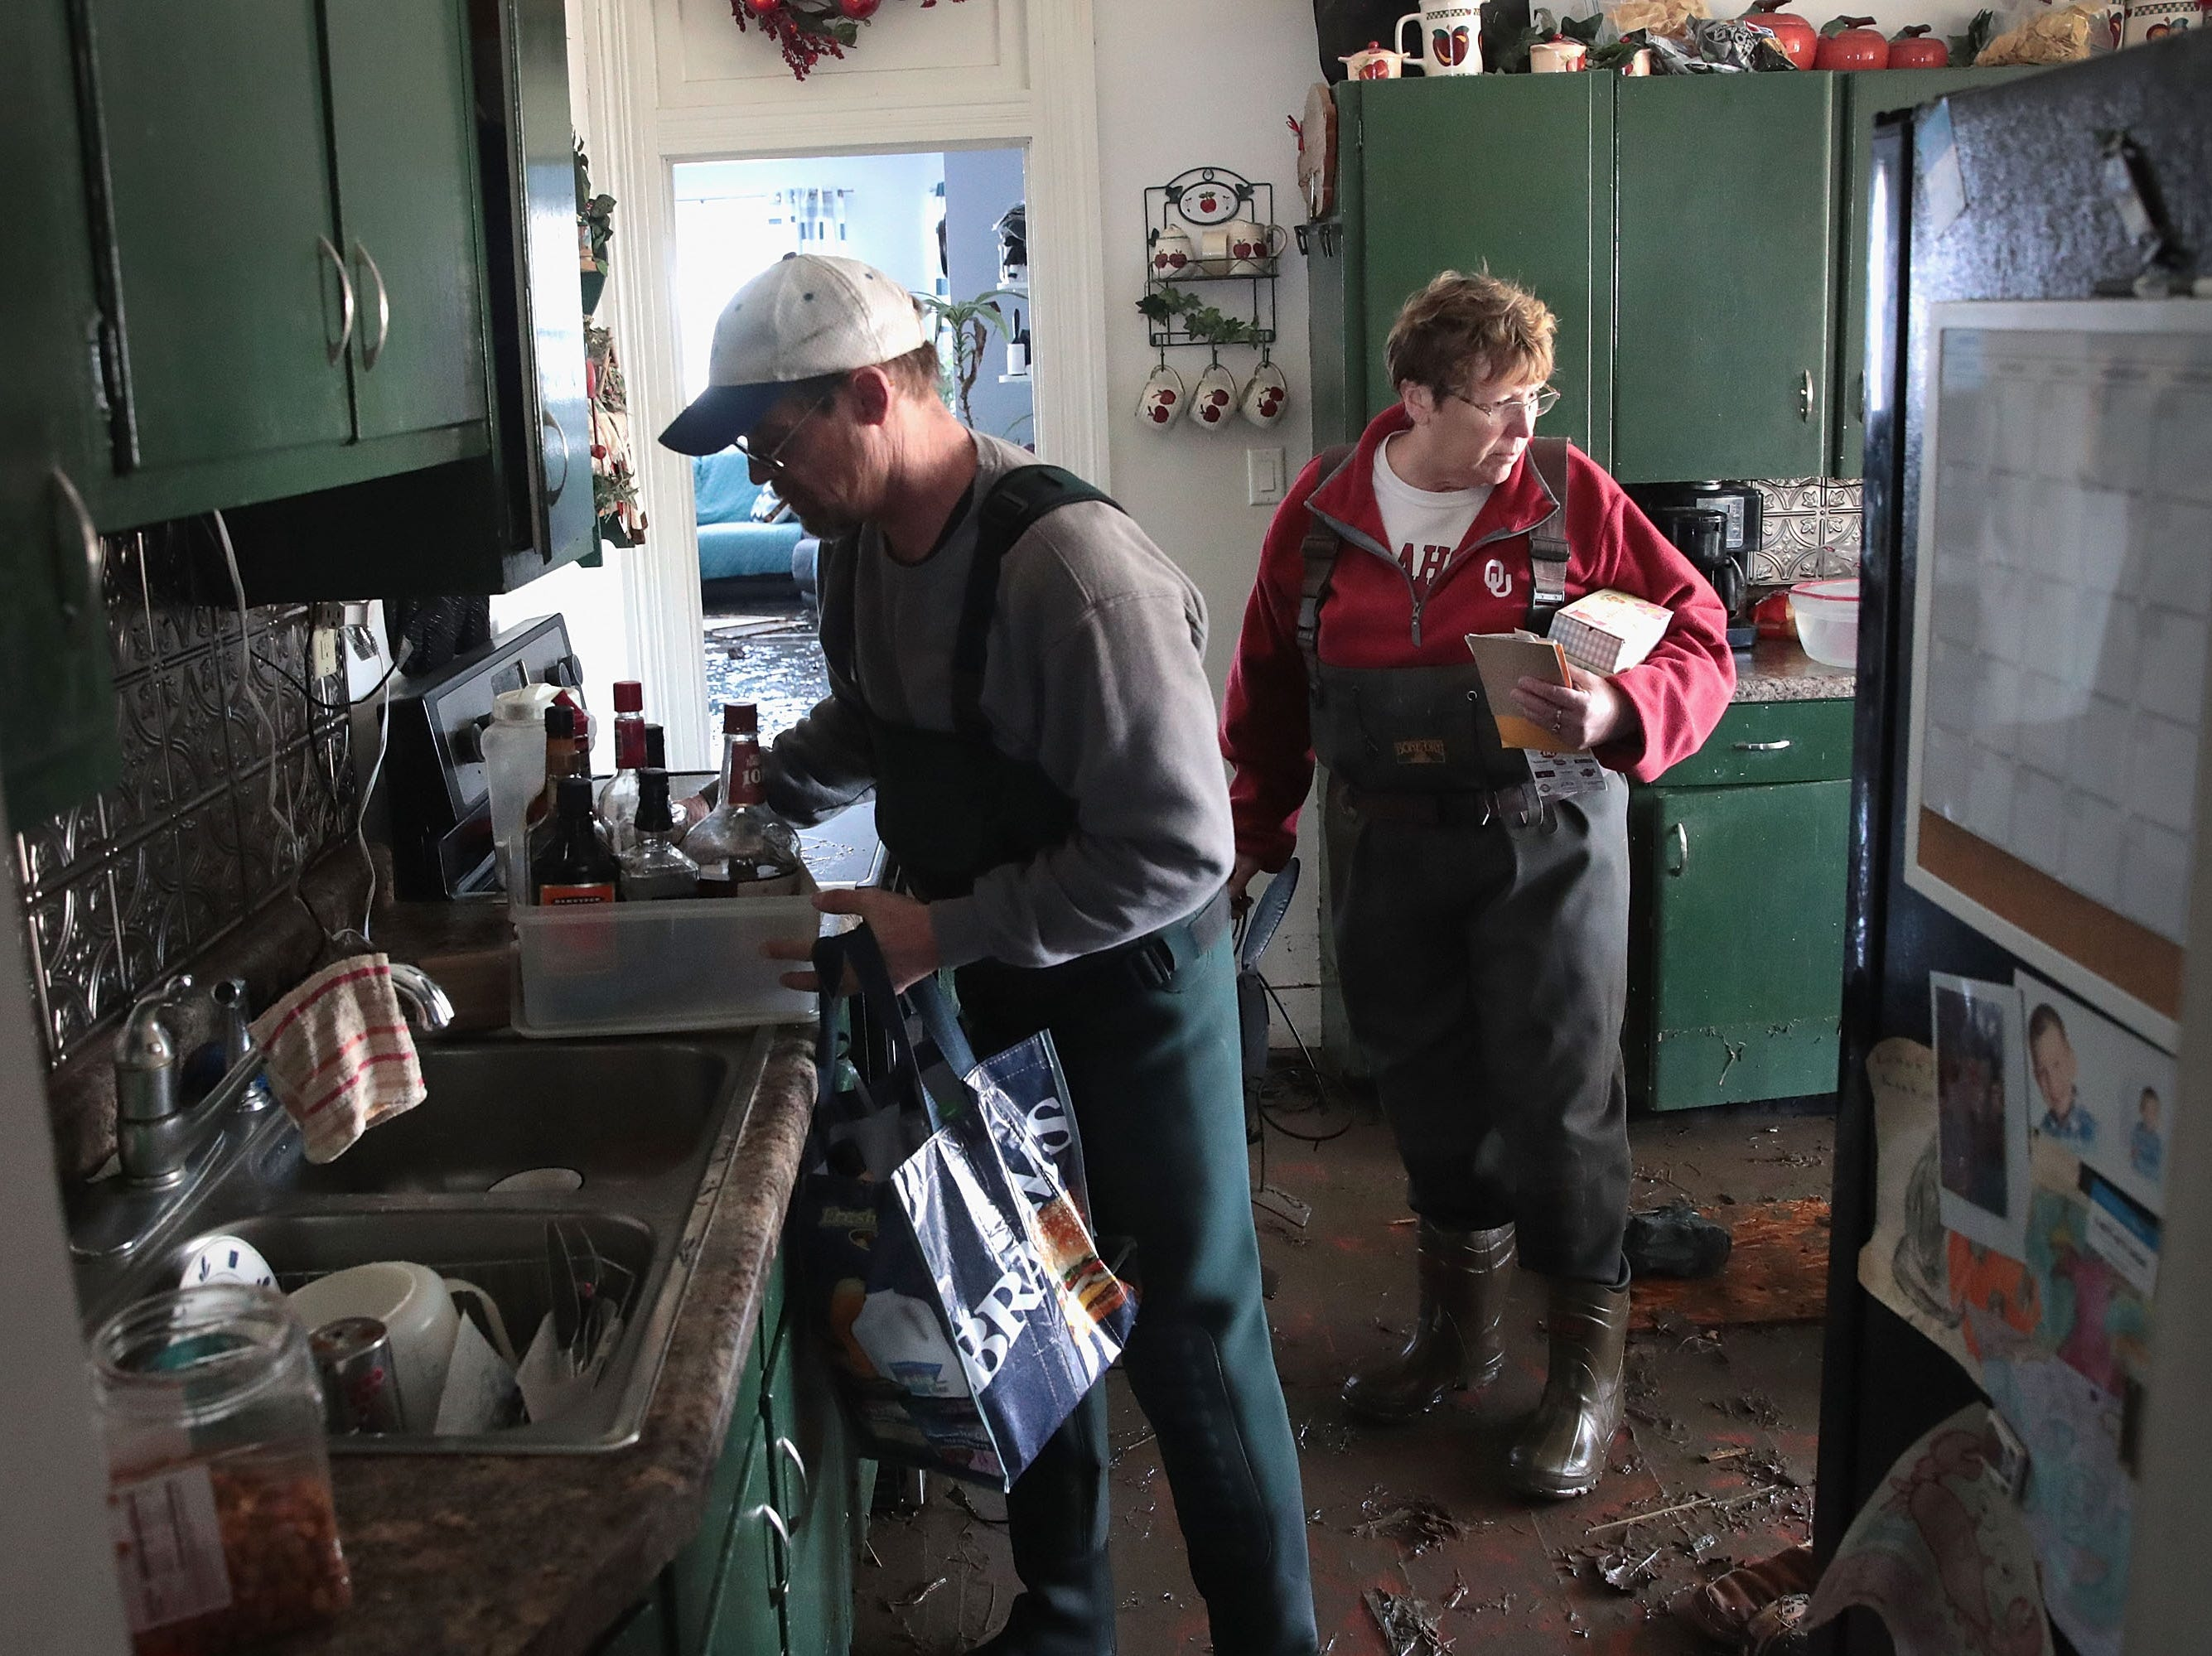 Bill Peeler helps his friend Kathy Drummond remove items from her flooded home on March 20, 2019 in Hamburg, Iowa.